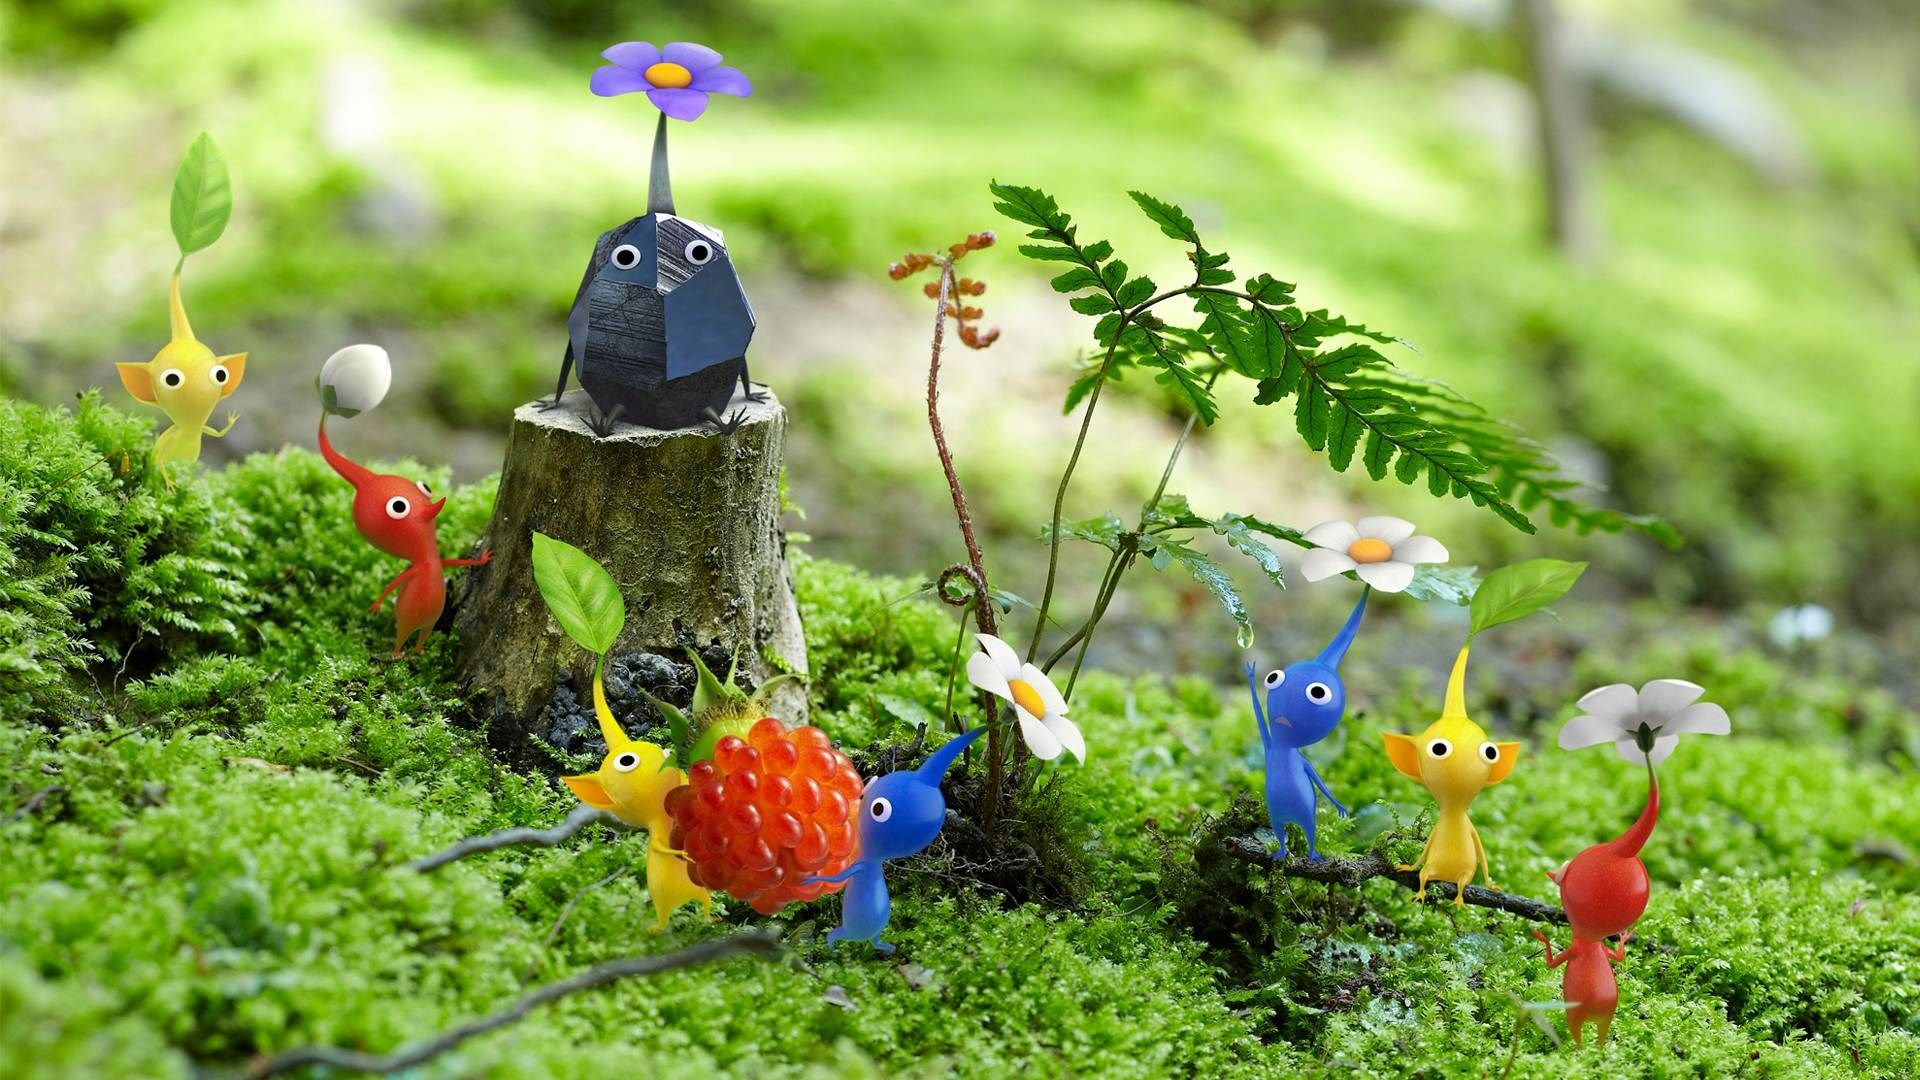 Pikmin free hd widescreen x likeagod pinterest